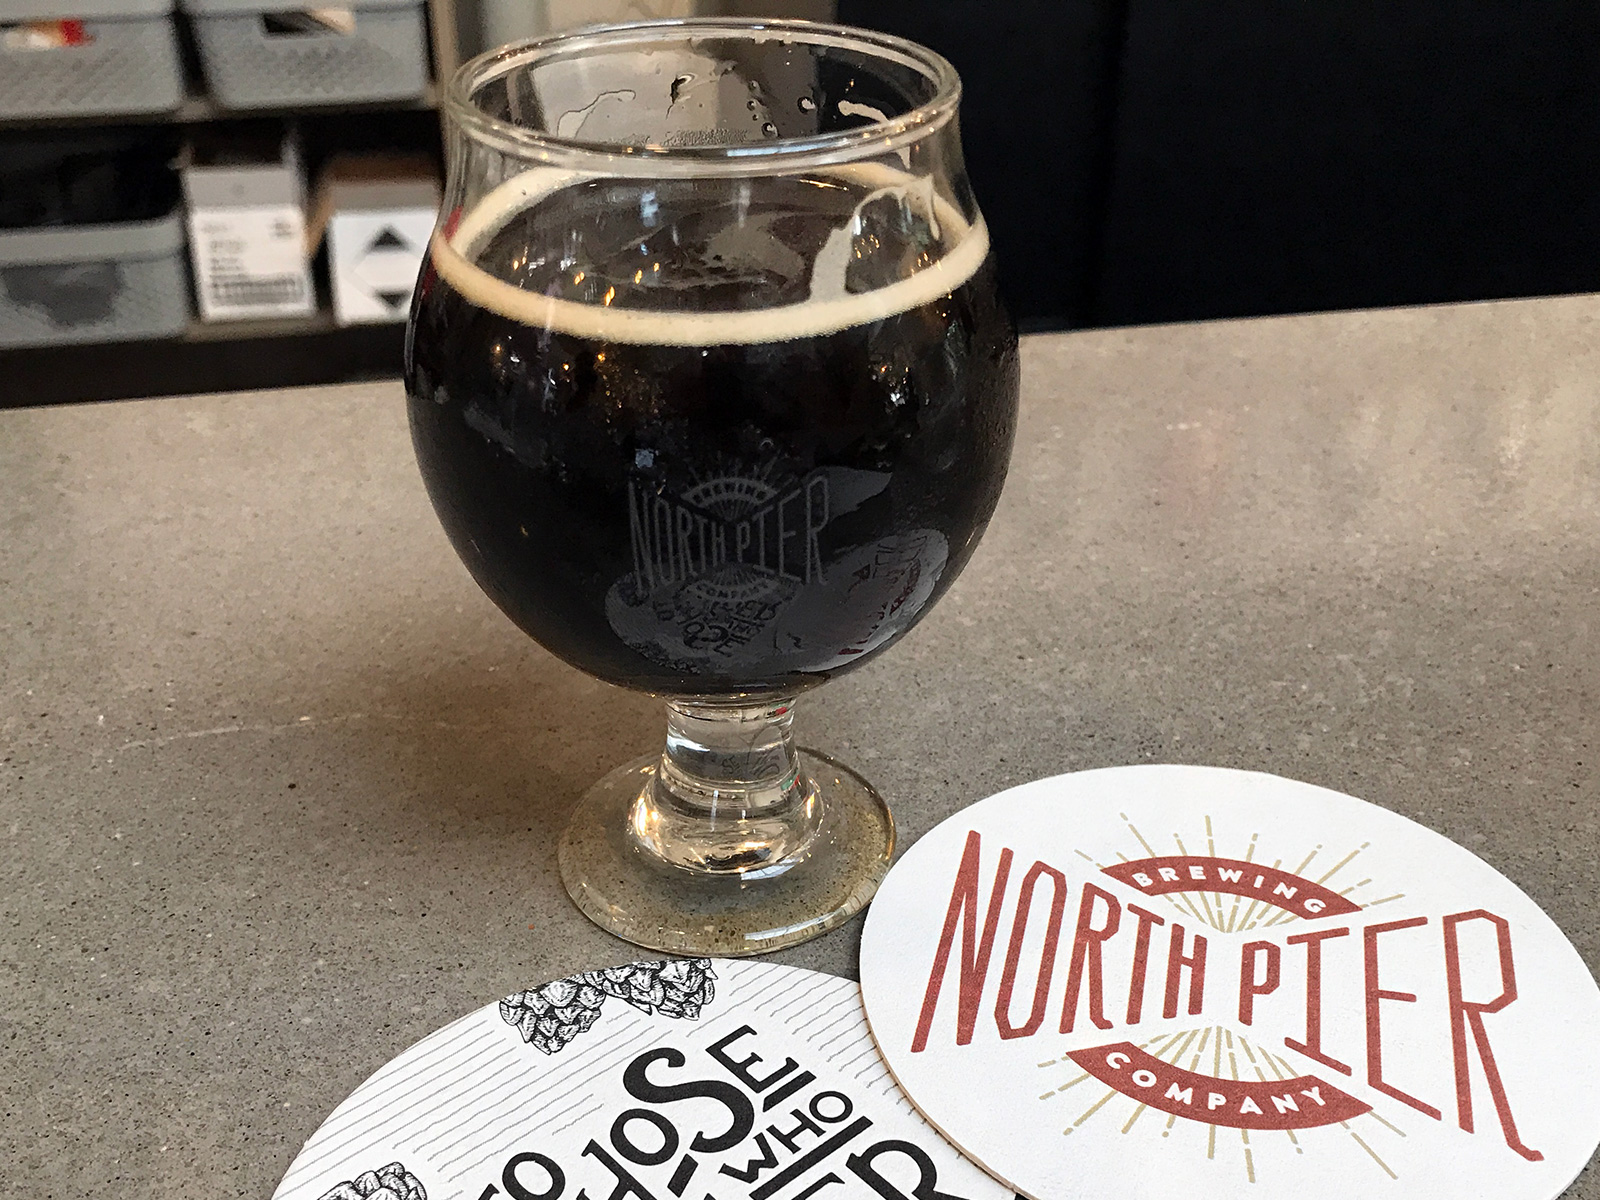 North Pier Brewing Co. in Benton Harbor, Michigan by Jets Like Taxis / Hopsmash